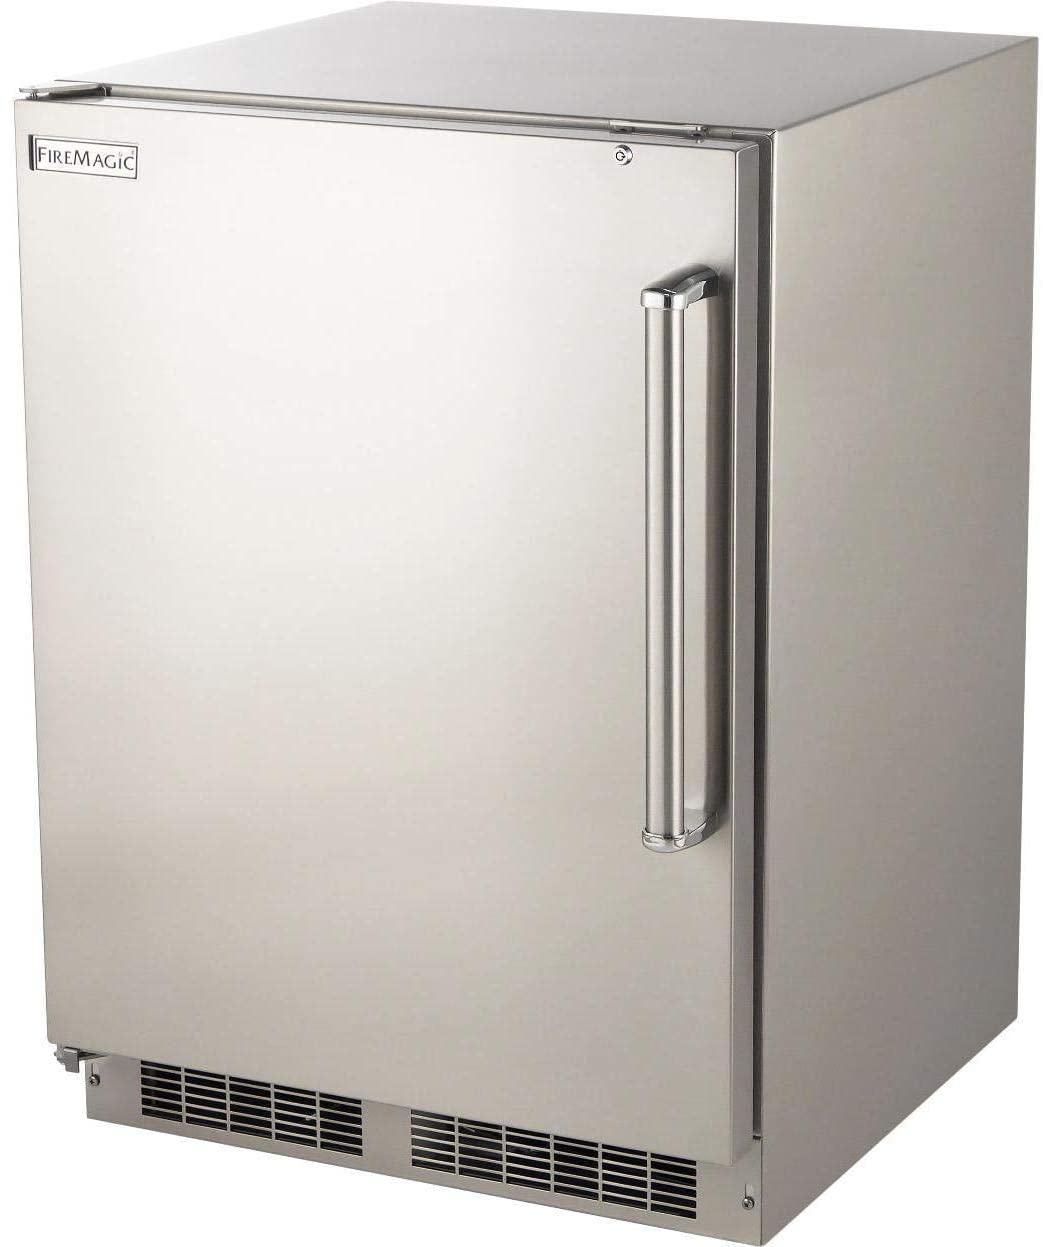 Fire Magic - Outdoor Rated Refrigerator with SS Squared Edge Premium Door (Left Hinge)